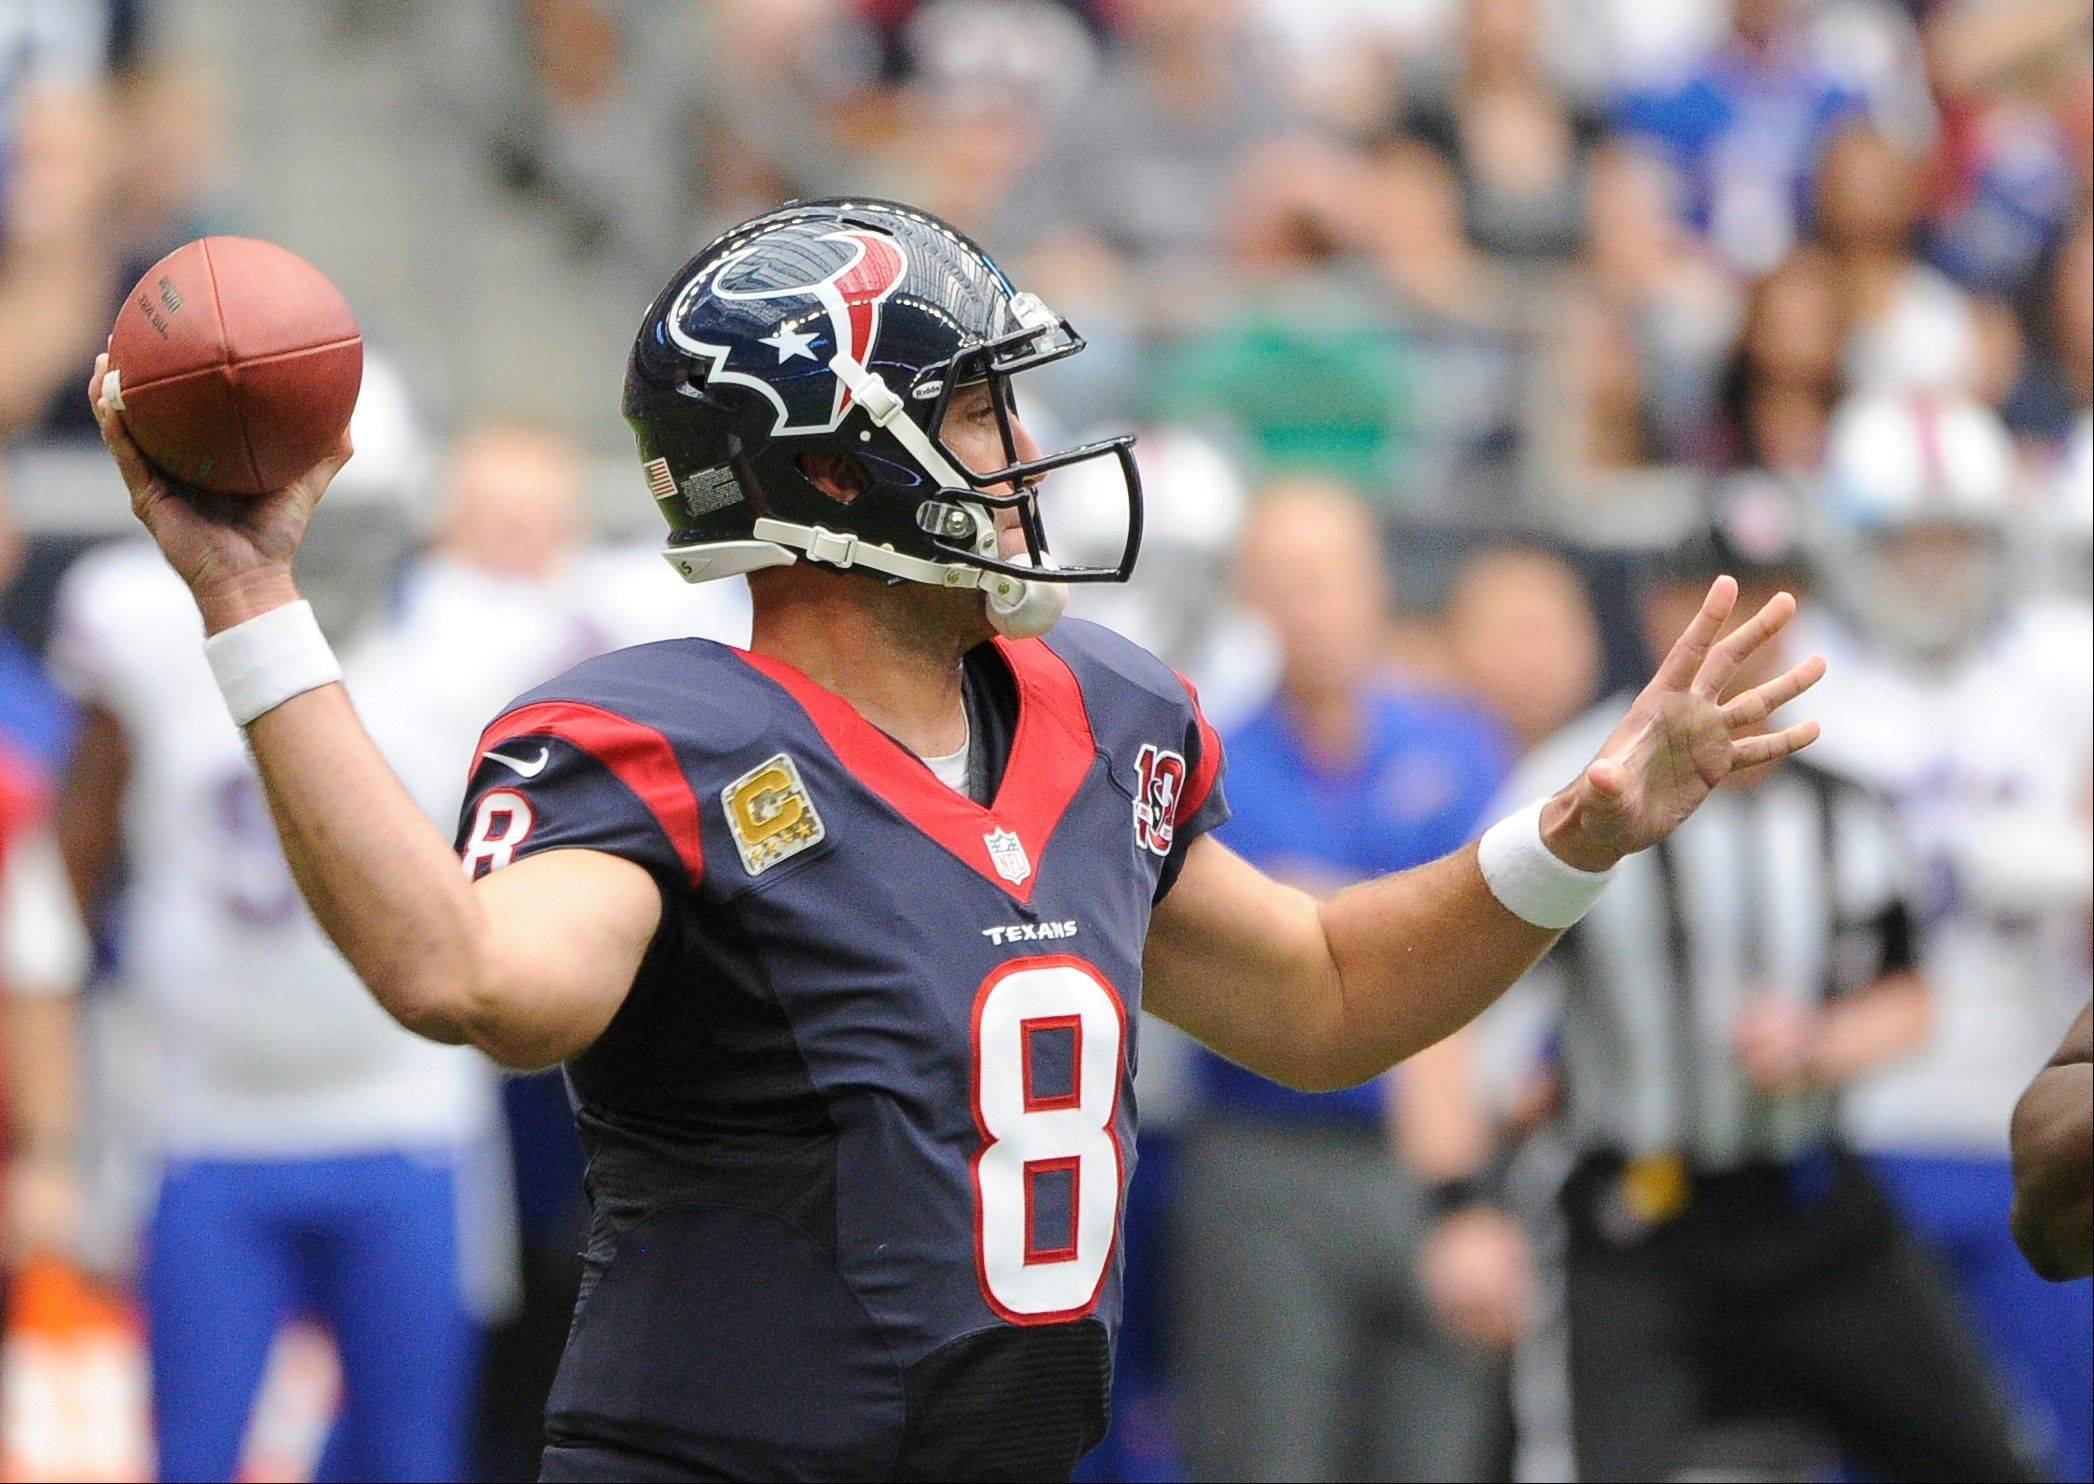 Houston Texans quarterback Matt Schaub has thrown only 4 interceptions this season, while the Bears have grabbed 17.